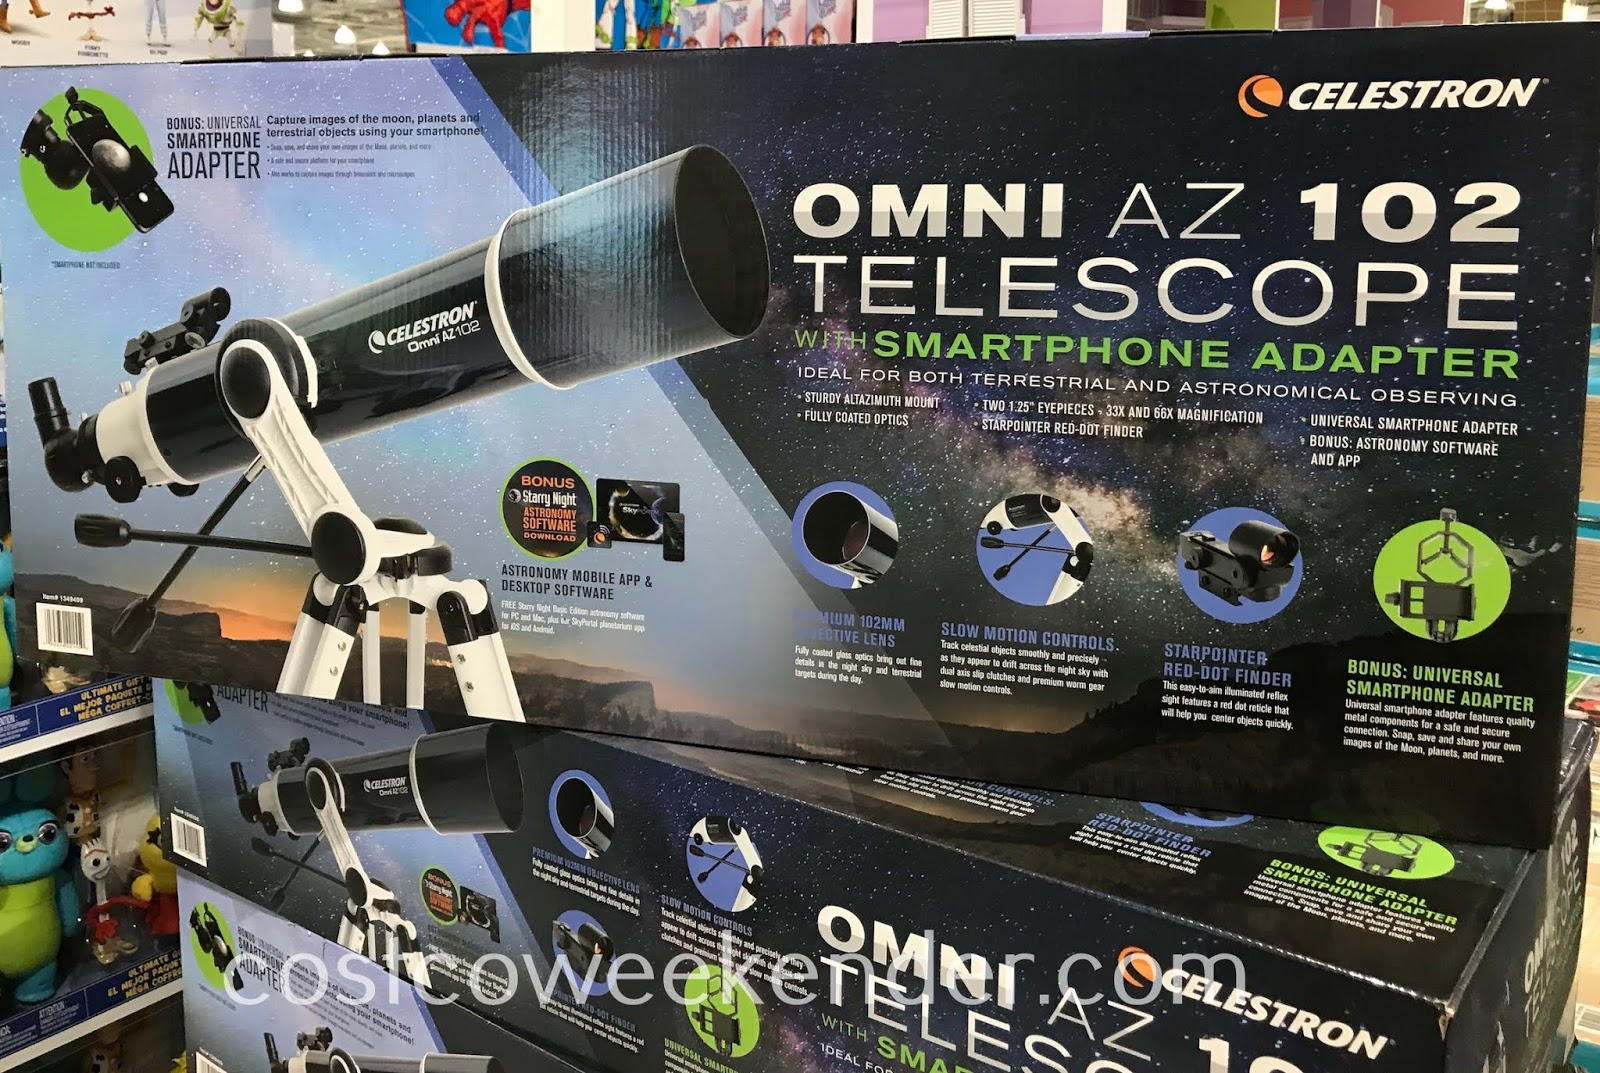 Bring out your inner Galileo and explore the galaxy with the Celestron Omni AZ 102 Telescope